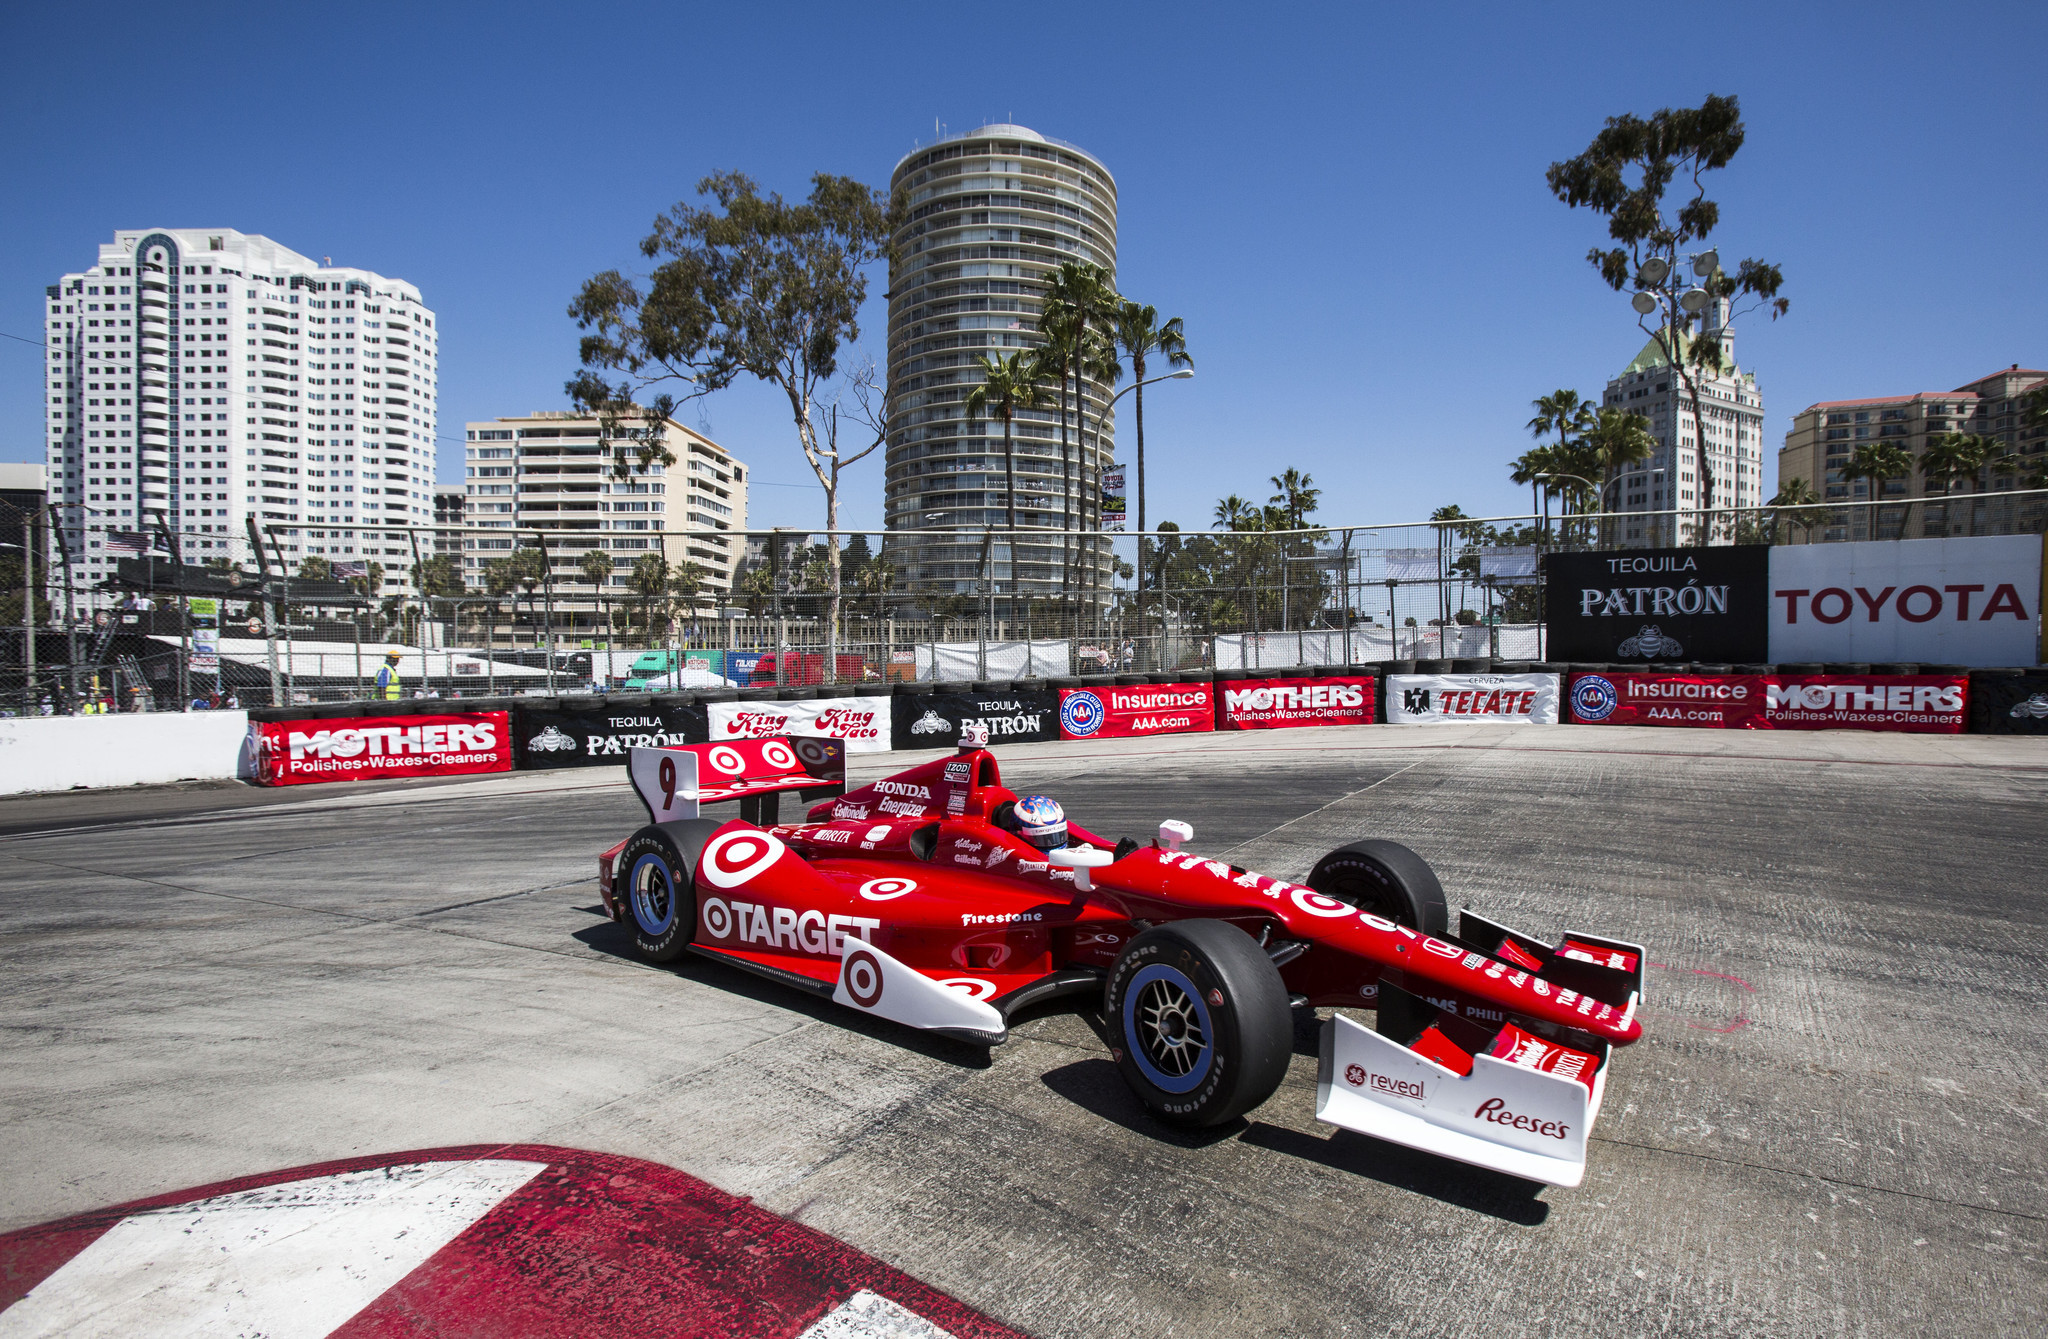 Alexander Rossi repeats as Grand Prix of Long Beach winner